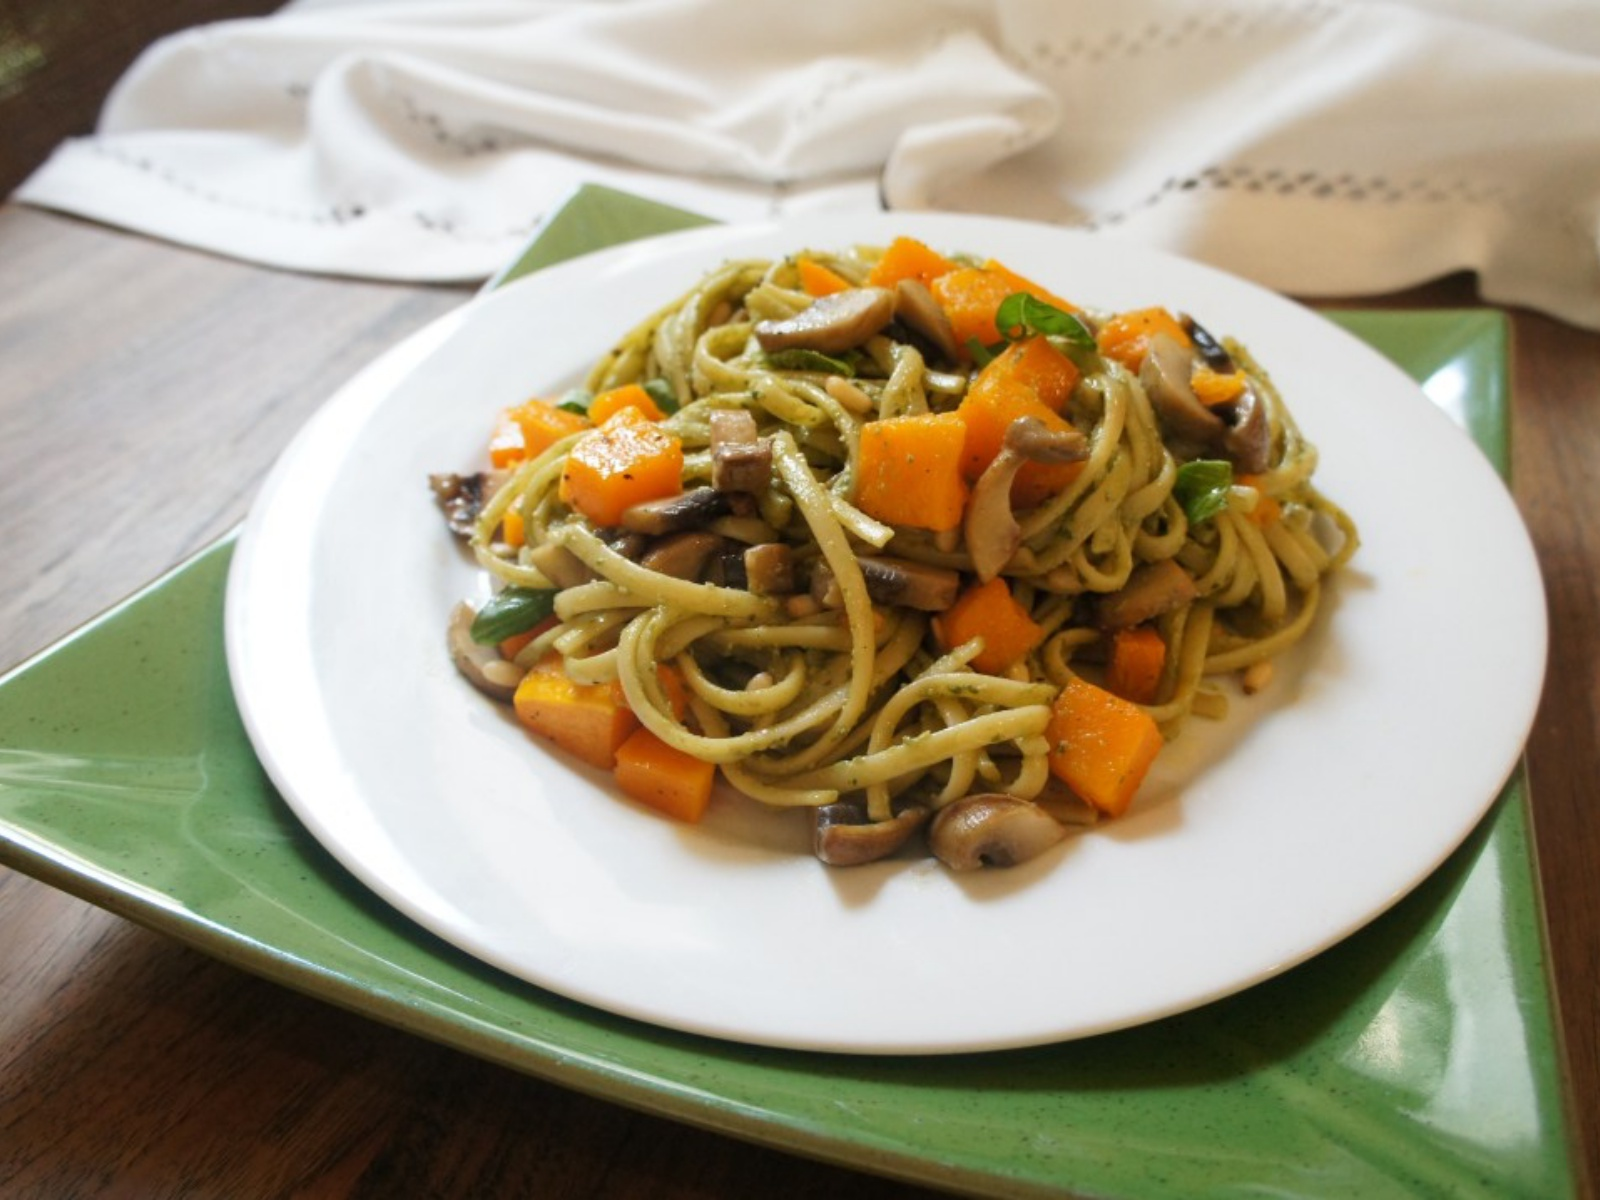 Linguine with Mushroom and Avocado Pesto